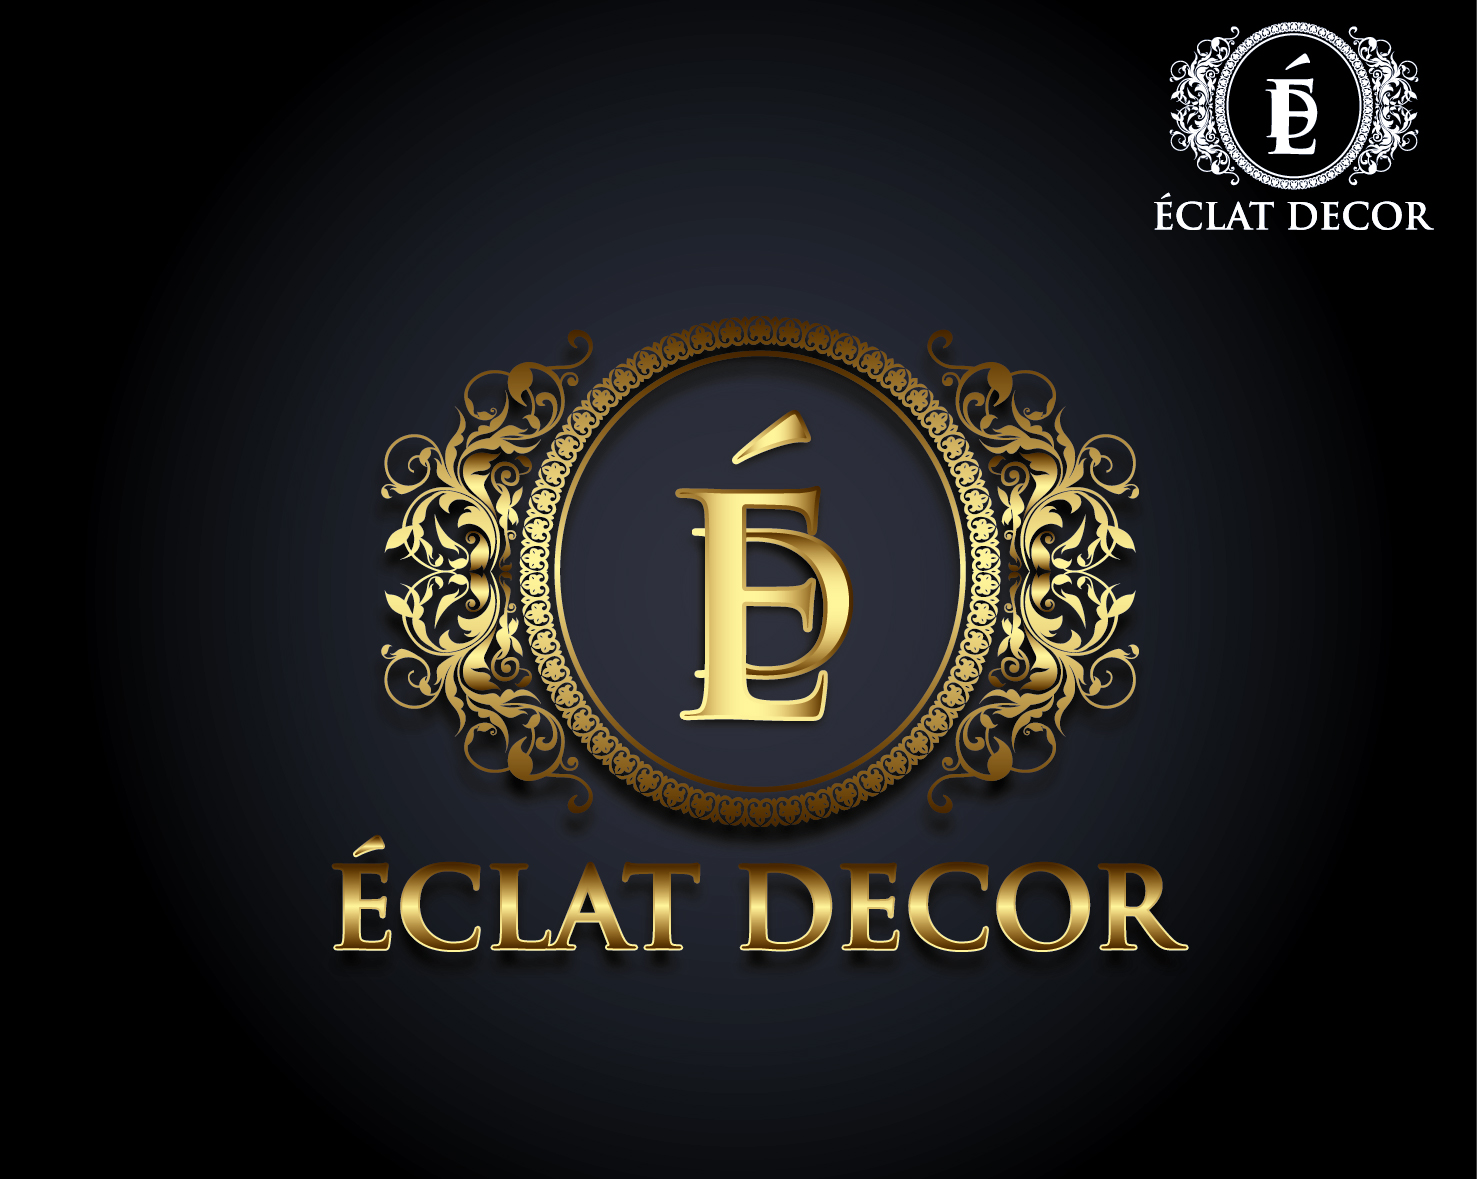 Logo Design by VENTSISLAV KOVACHEV - Entry No. 43 in the Logo Design Contest Imaginative Logo Design for Éclat Decor.